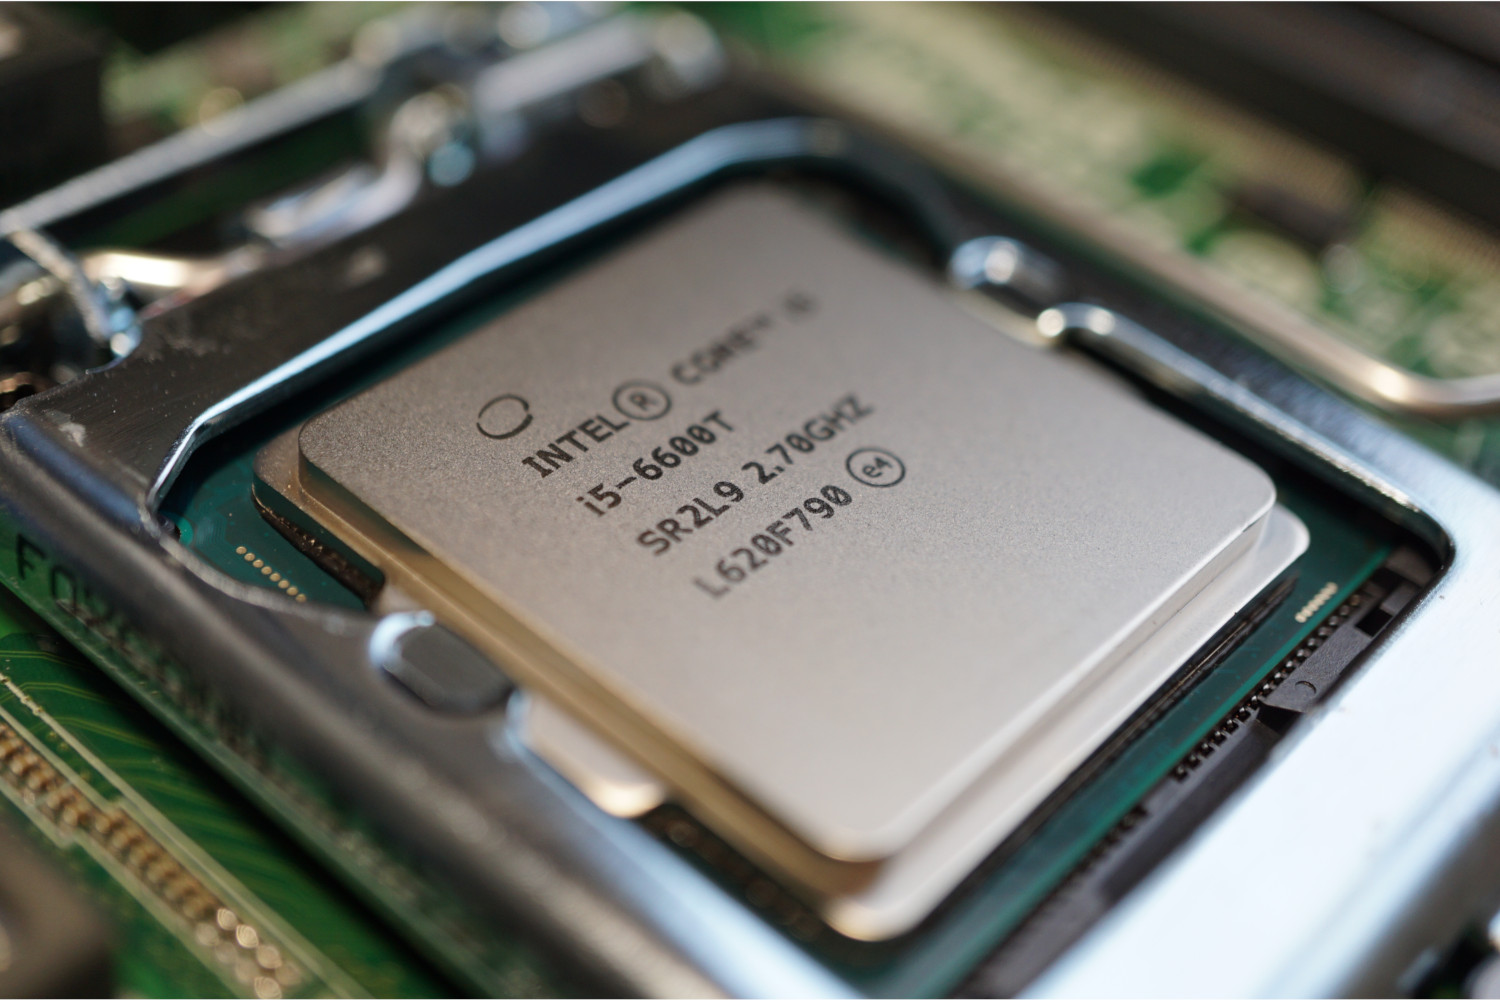 What exactly is a CPU?